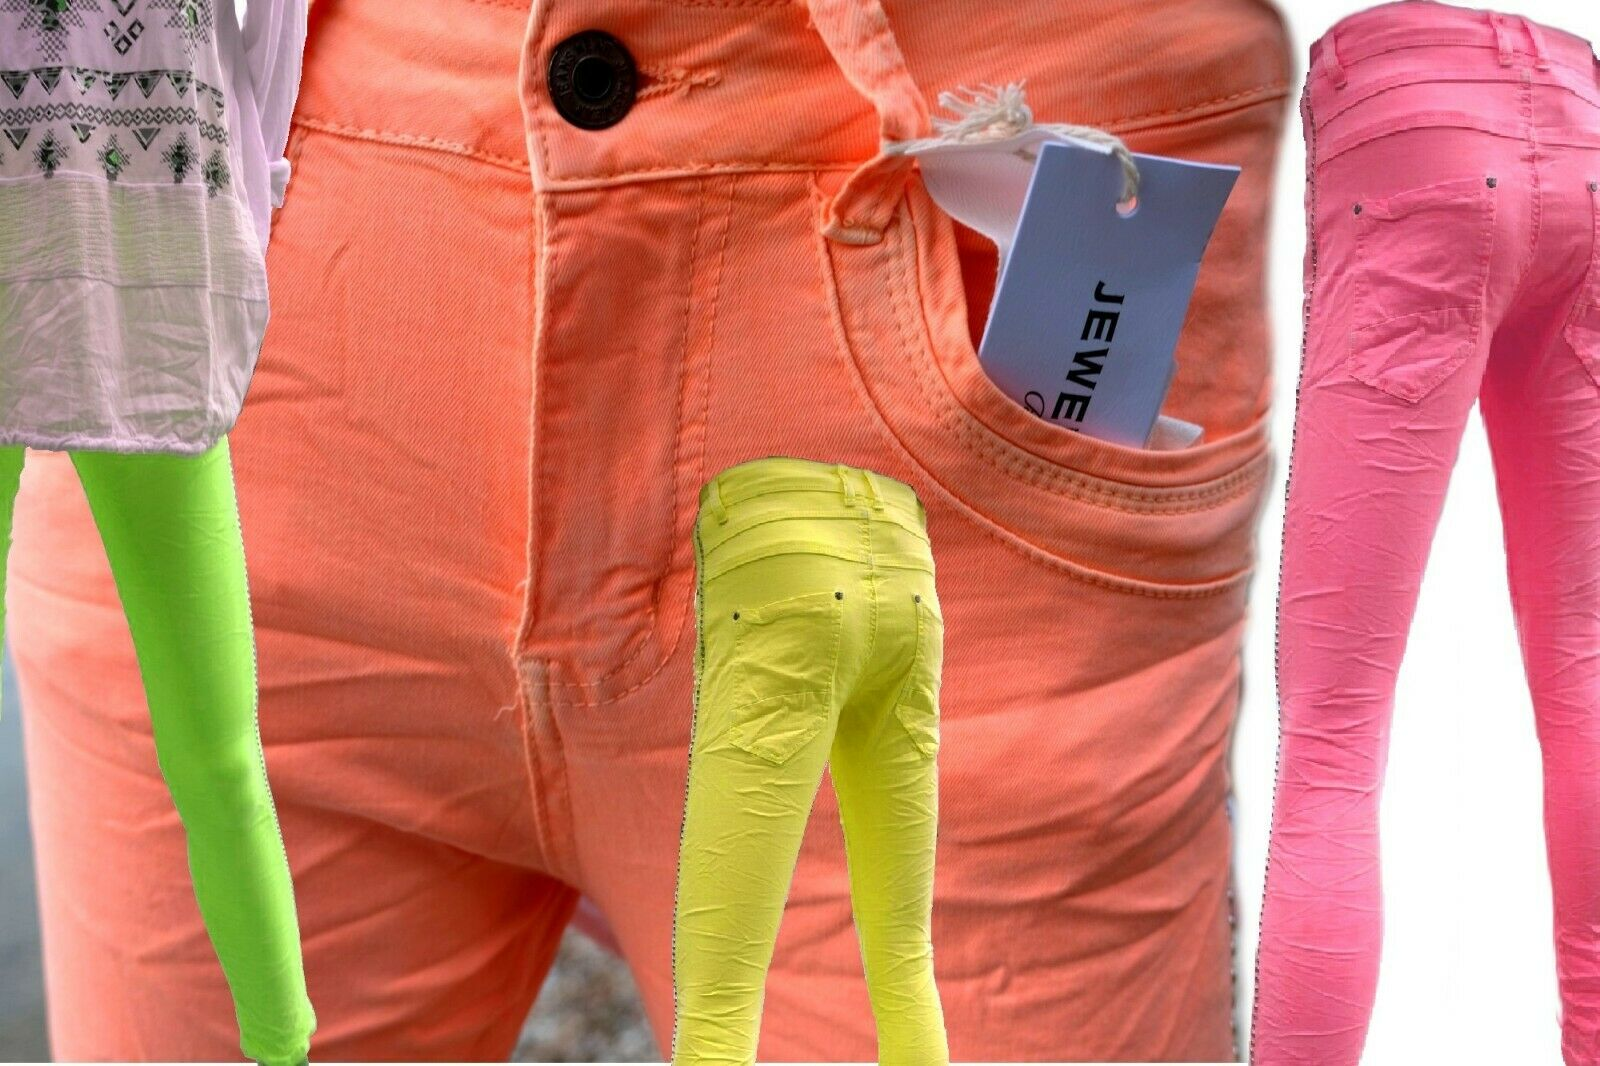 Jewelly Damen Baggy Jeans XS-S-M-L-XL- lange Hose Neon grün-gelb-pink-orange